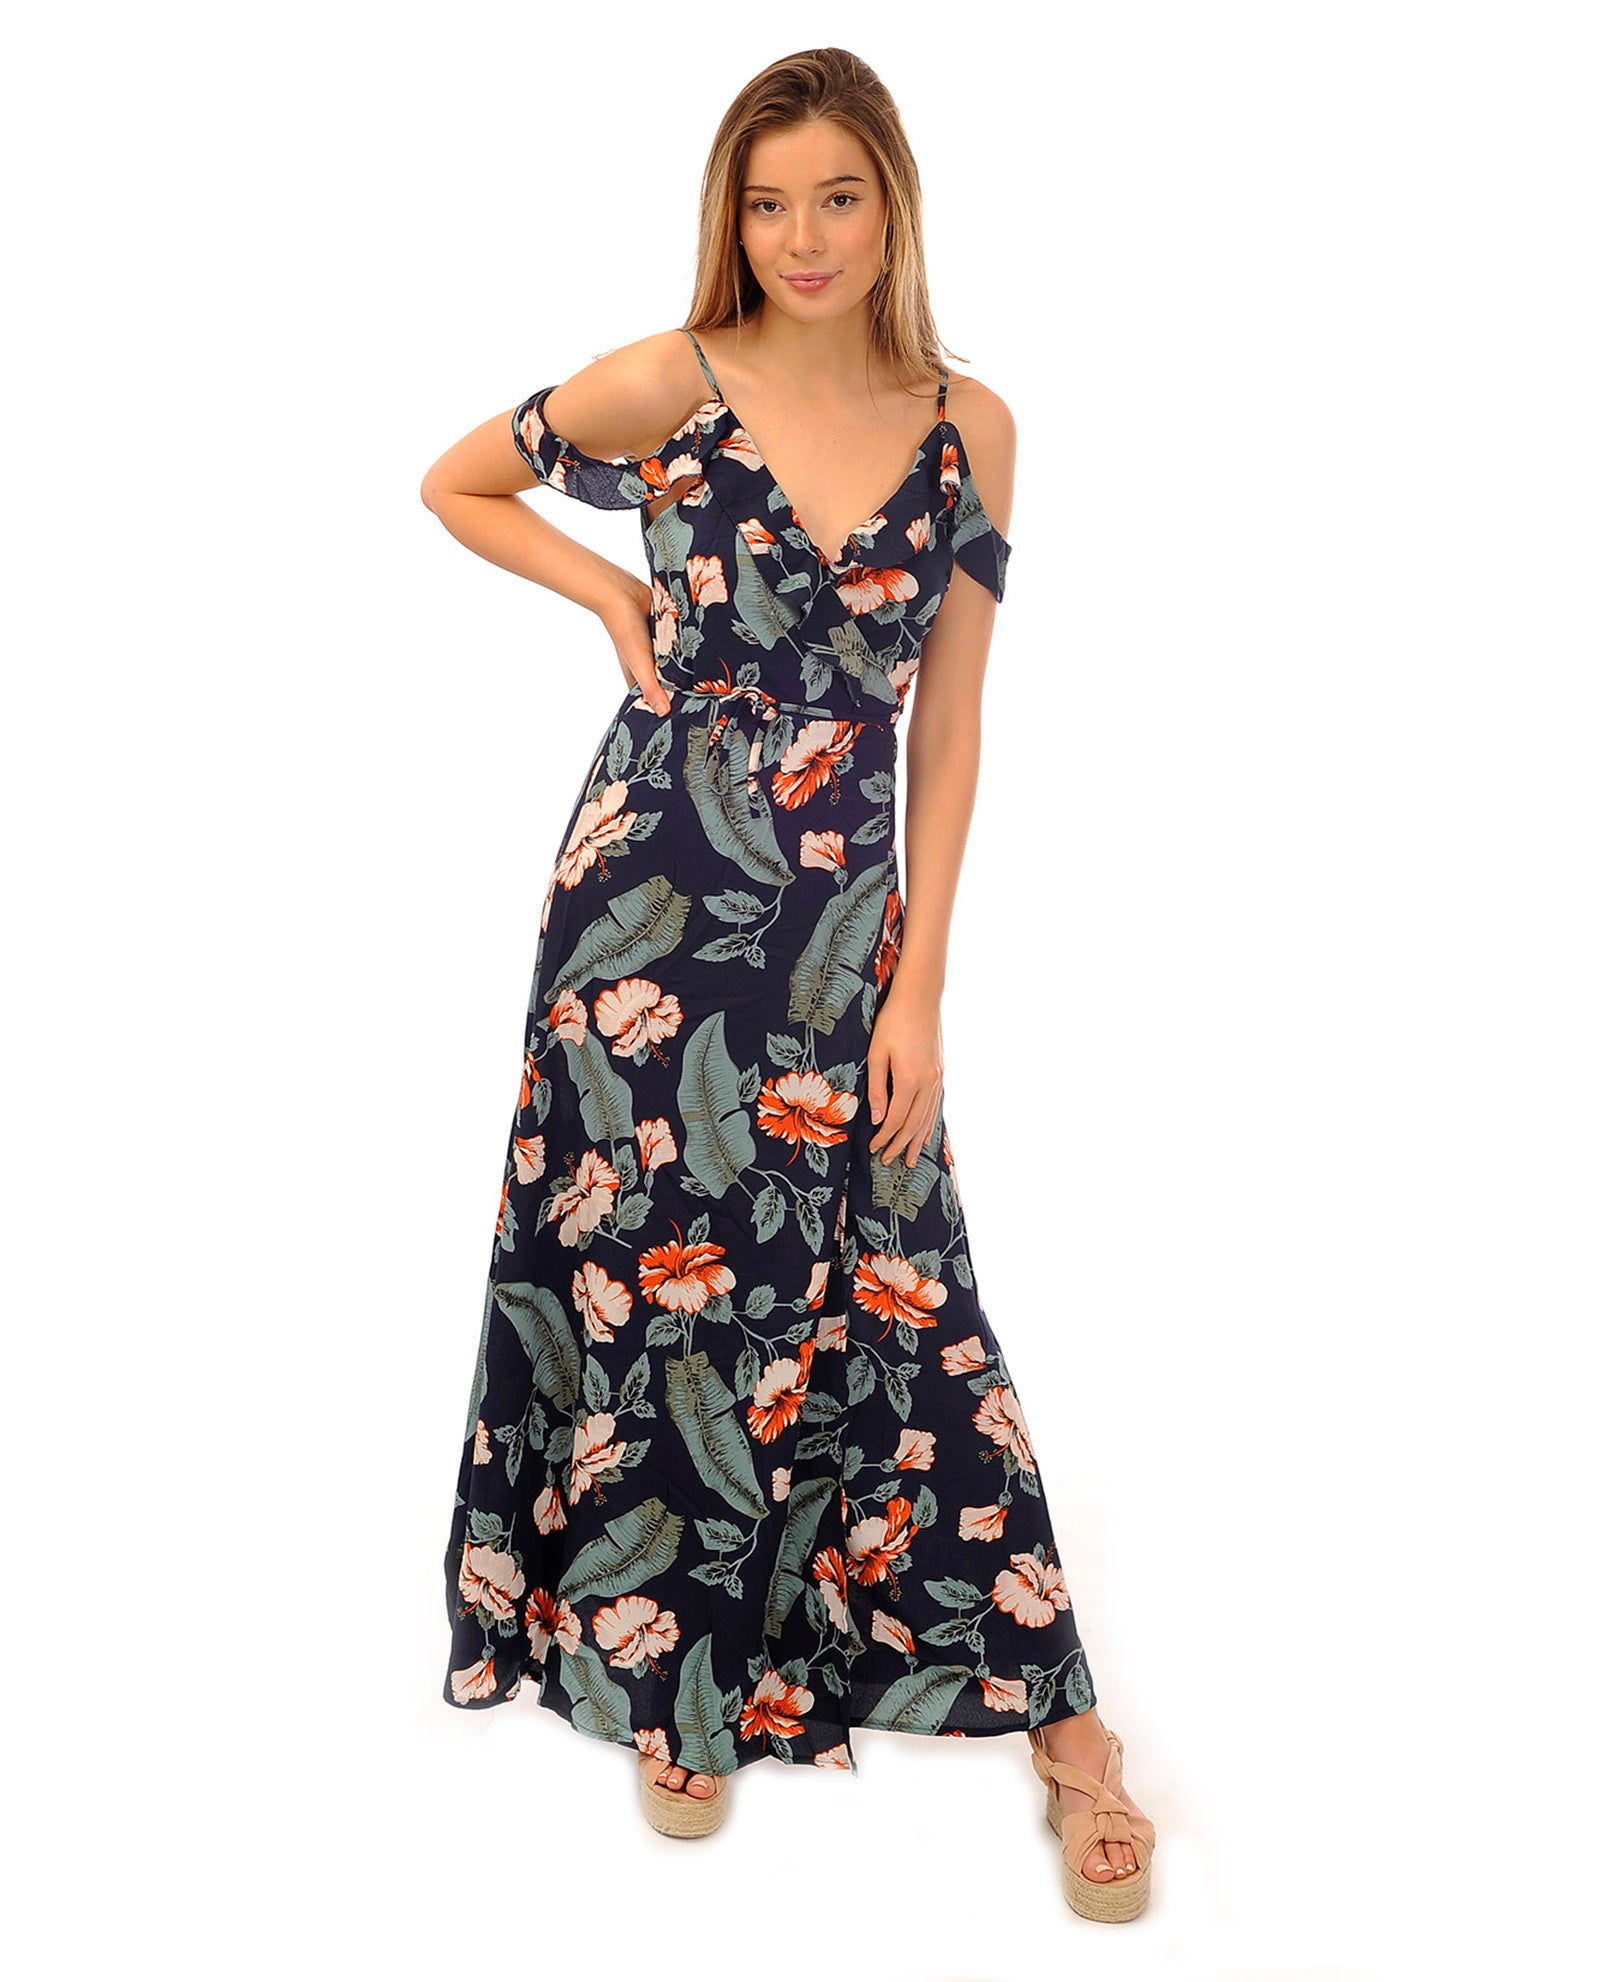 Rent dress | Tropical print cold shoulder maxi dress with cross neck | Hirestreetuk.com